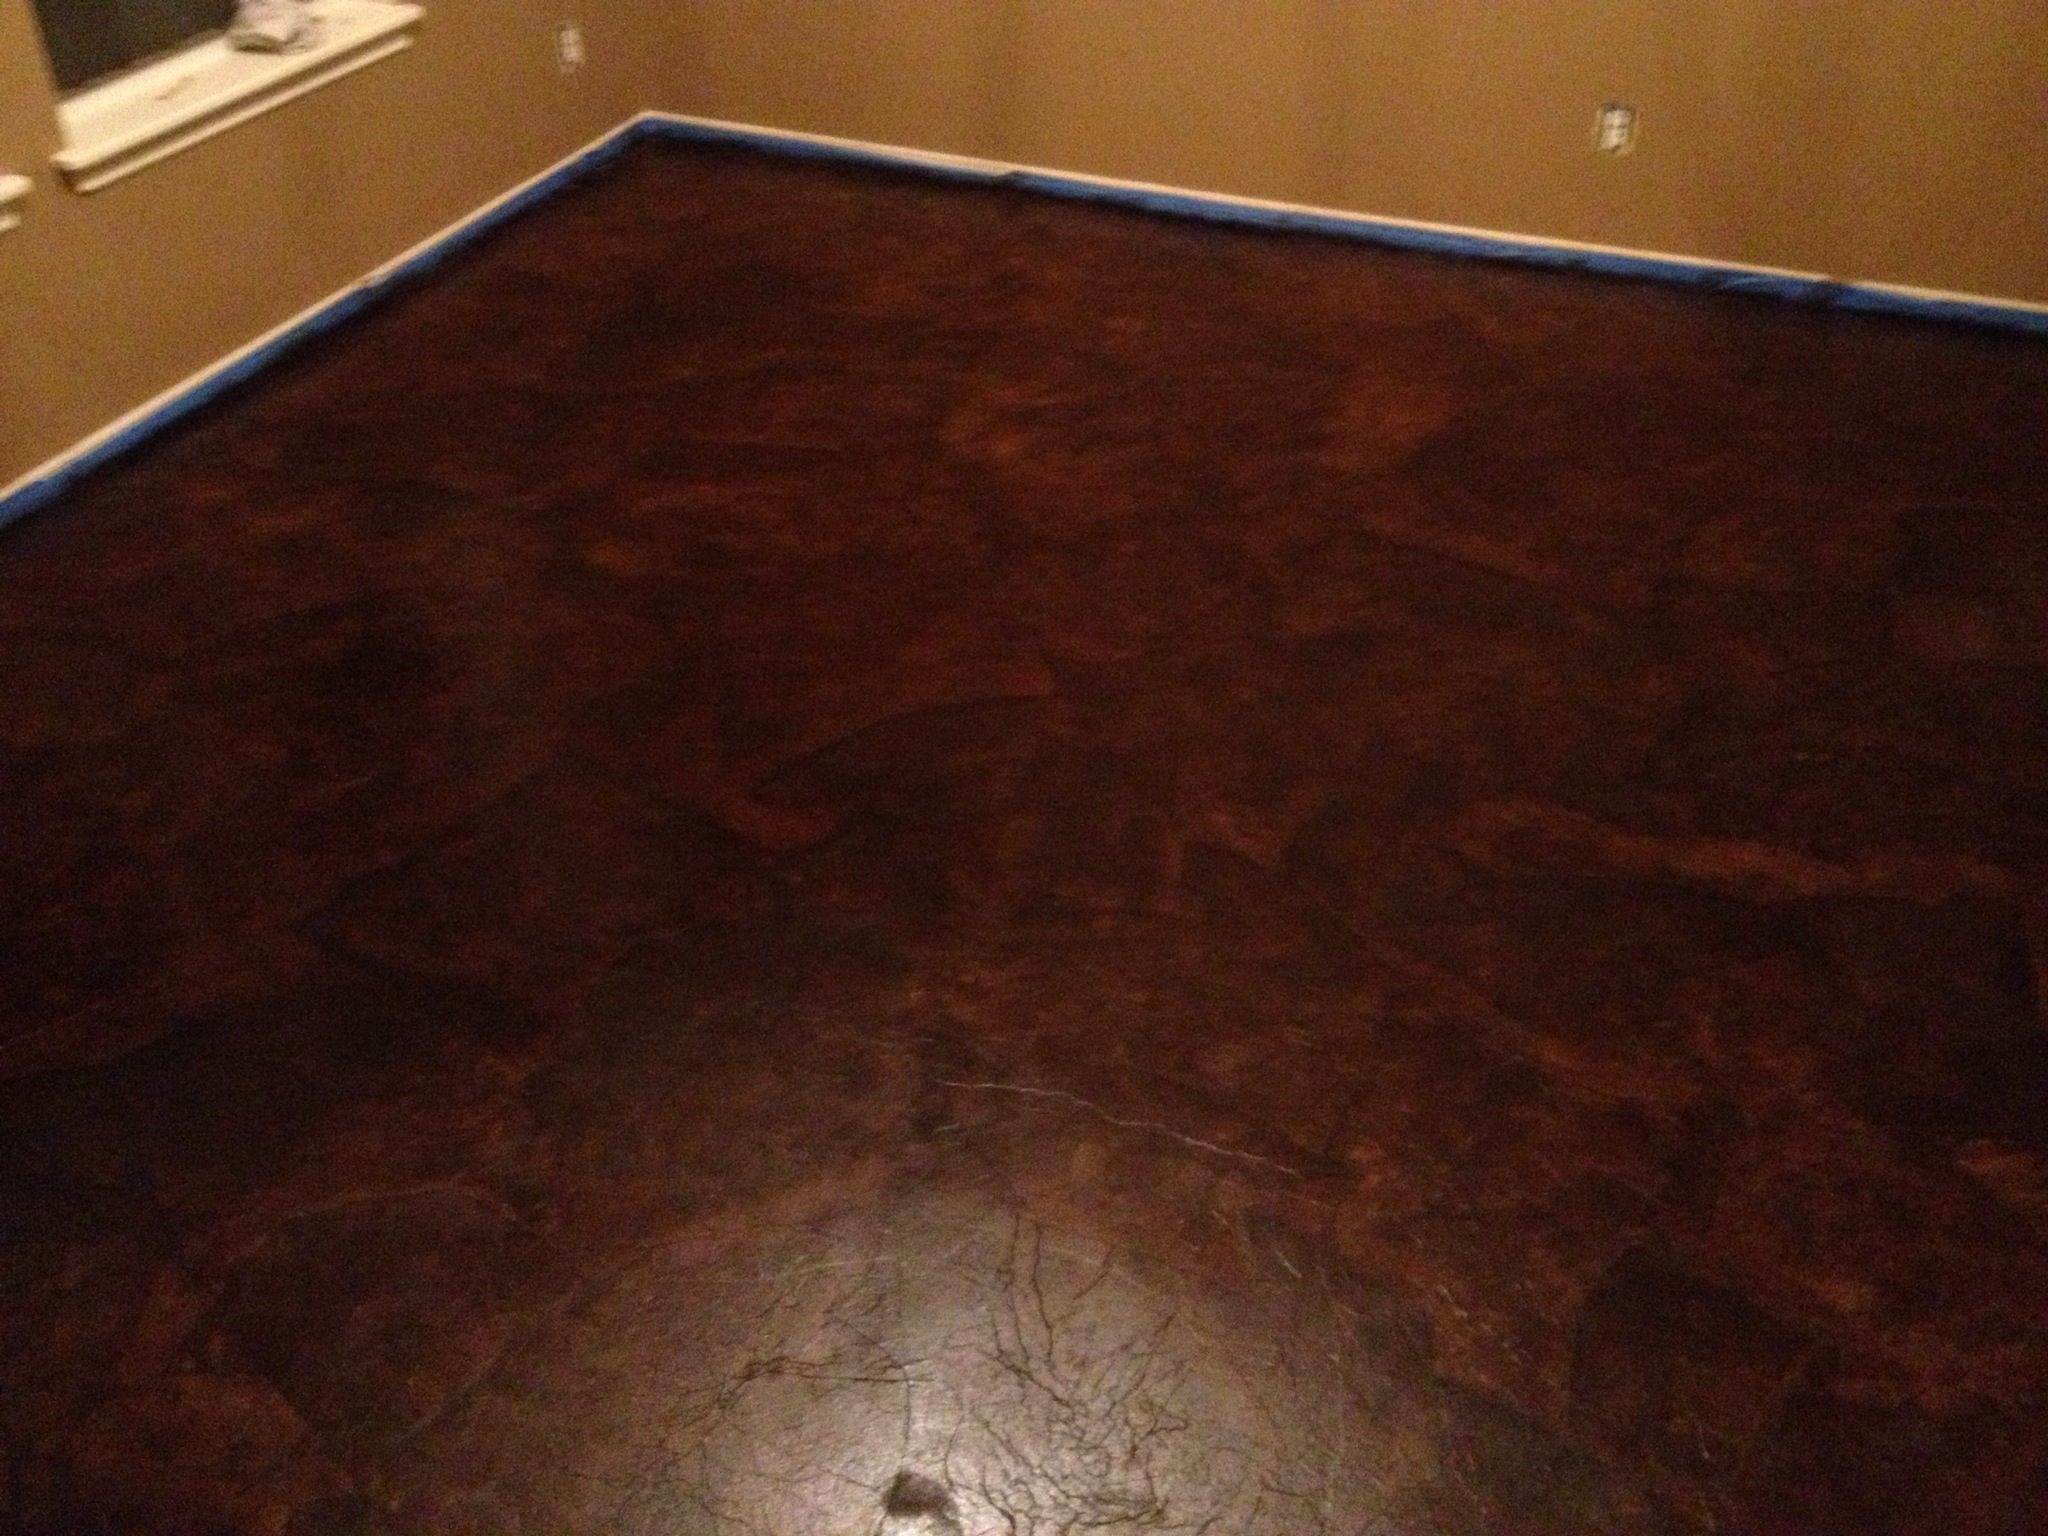 hardwood floor installation estimate of diy paper bag floors that look like stained concrete diy brown throughout brown paper bag stained floors amazing project excellent instructions on how to complete the project